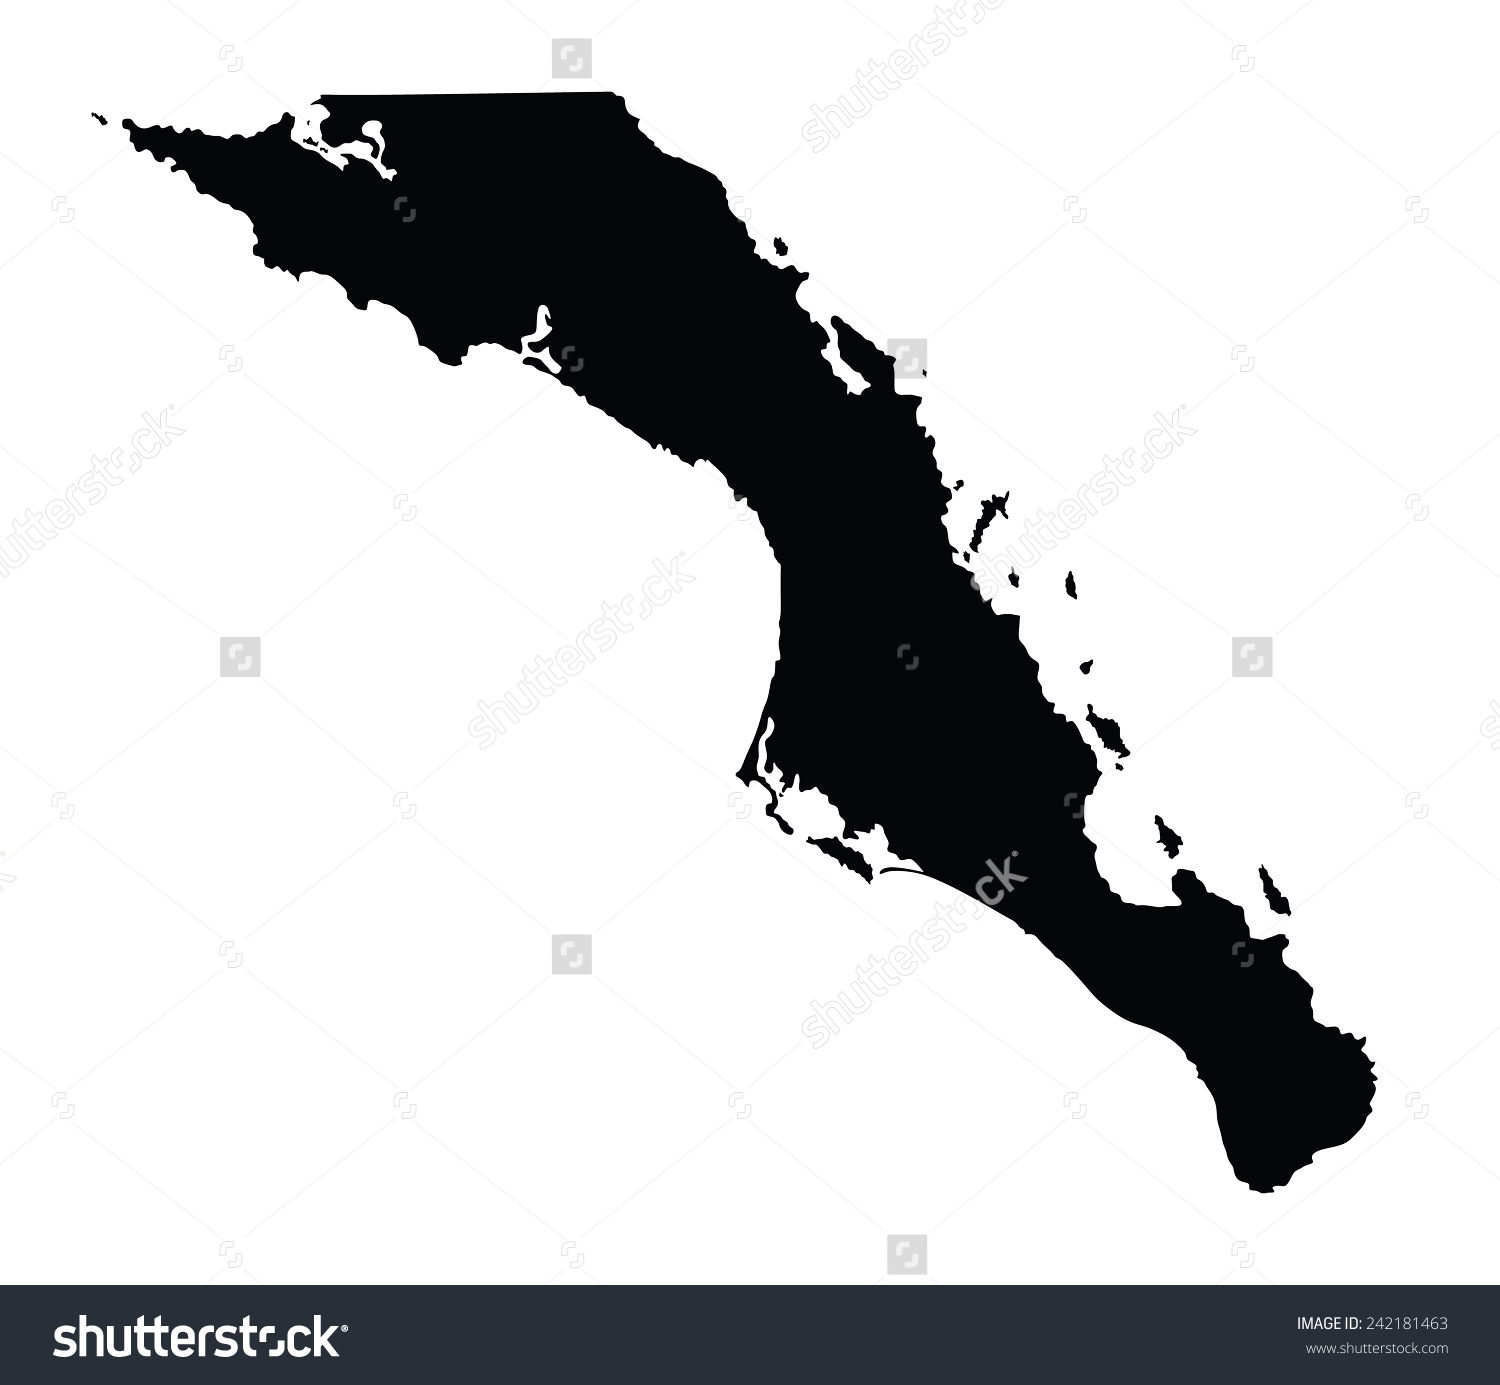 Baja California Sur Mexico Vector Map Stock Vector 242181463.